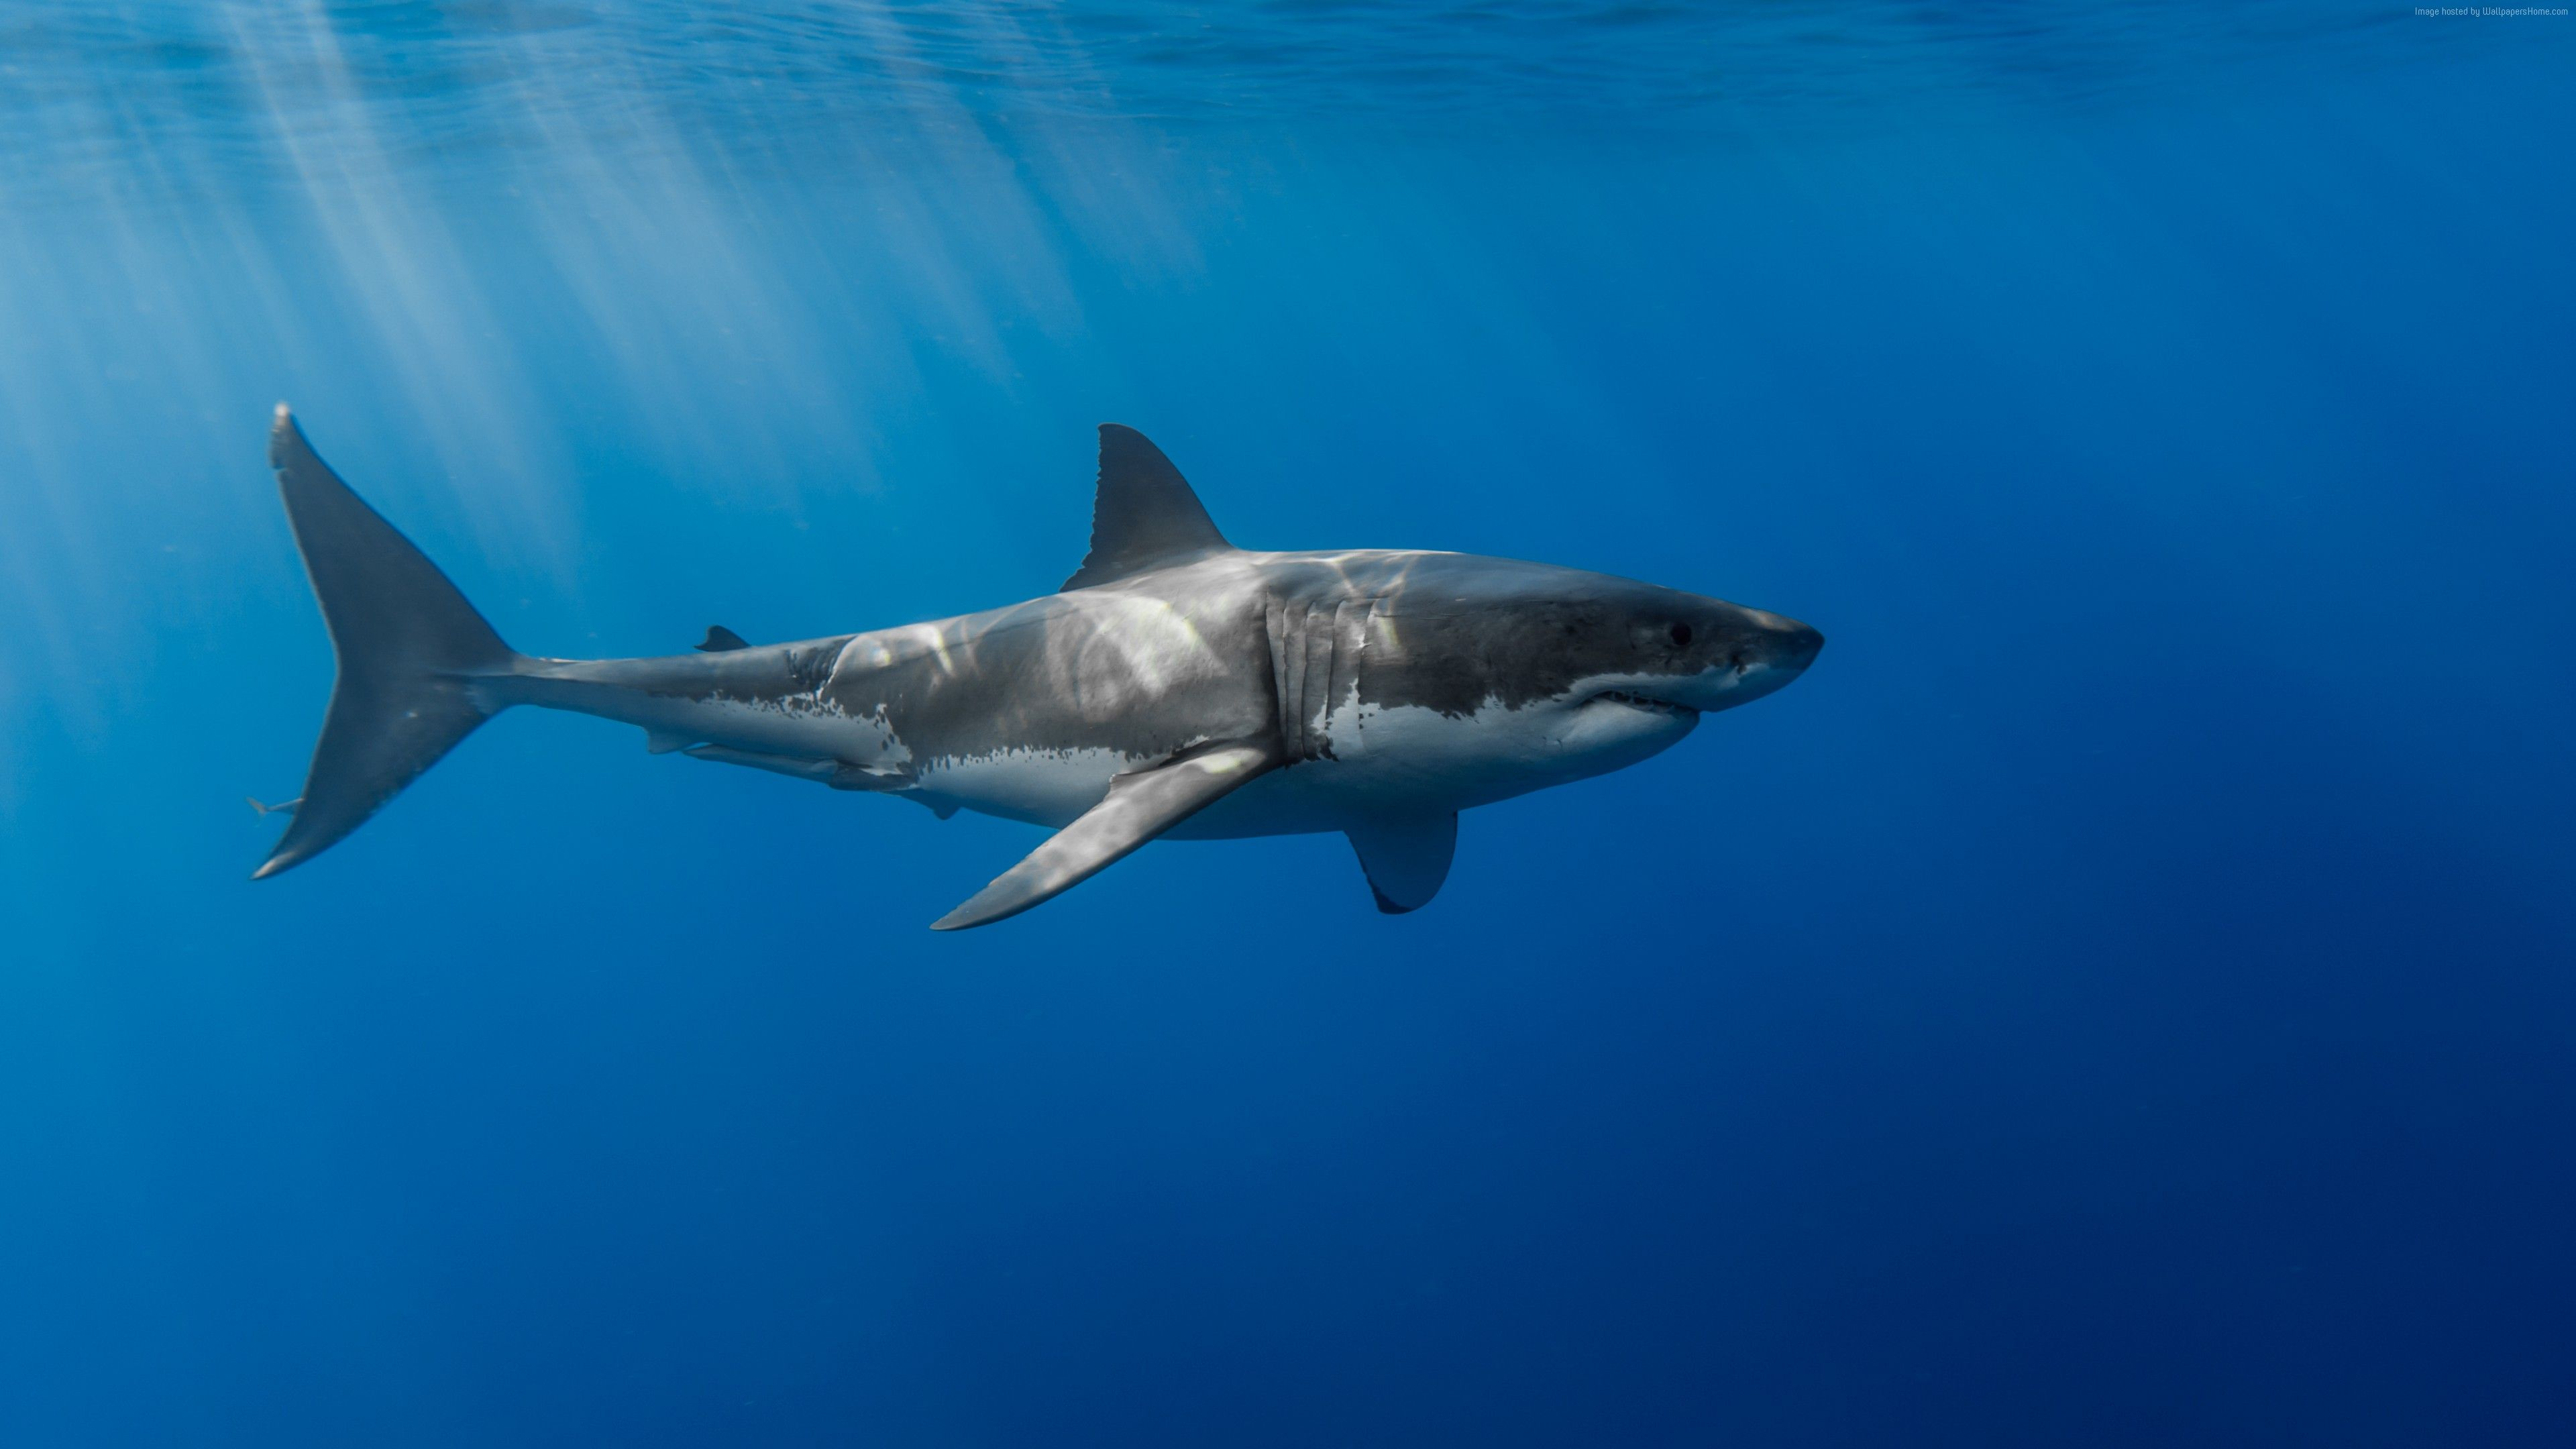 Shark Underwater 4k Great white shark, Shark, Animals